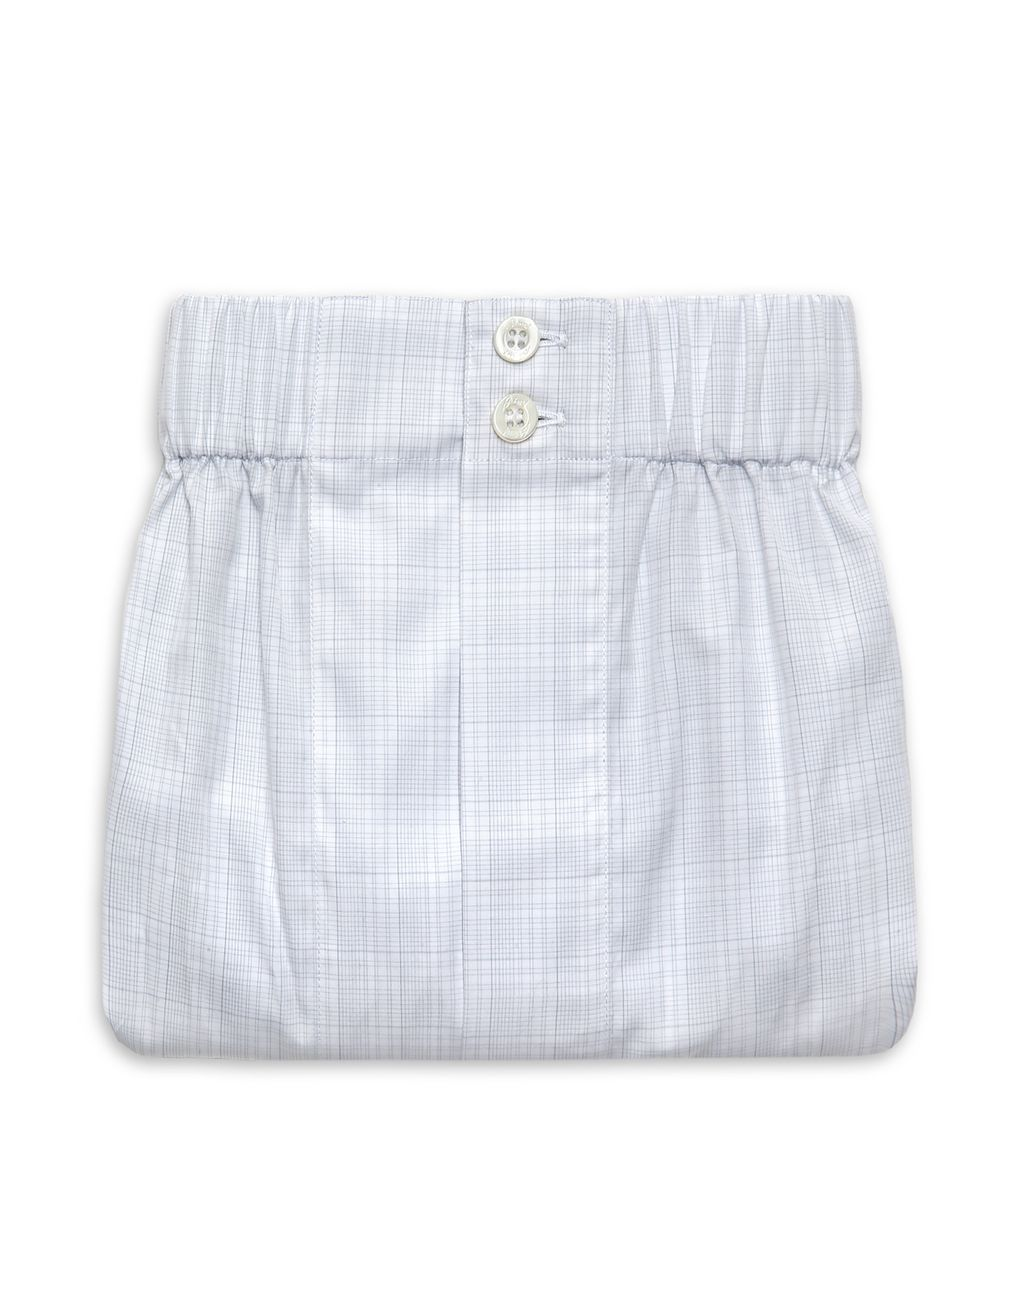 BRIONI Bluette and White Plaid Underwear Underwear Man r